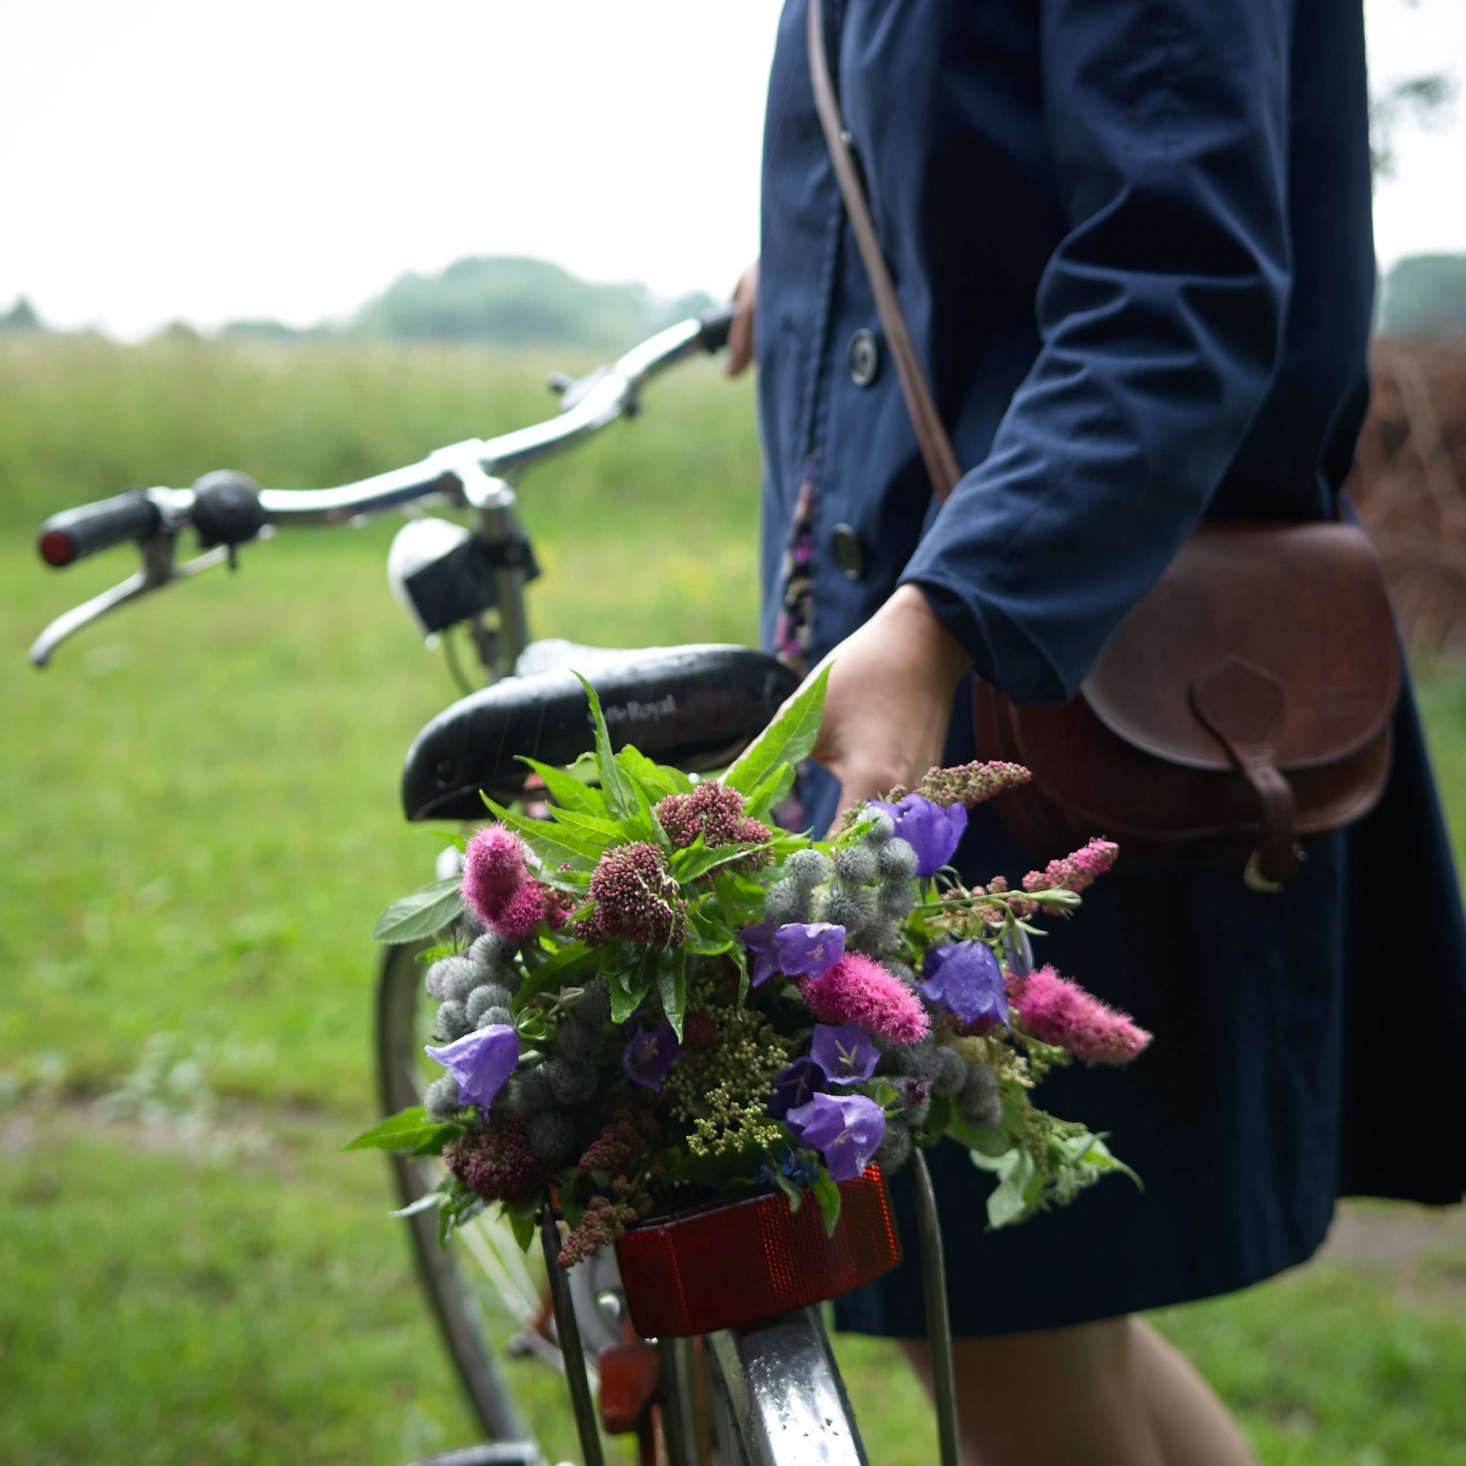 Juliane identifies all the flowers in her compositions, like this one picked while riding home from Lille Mosse, &#8